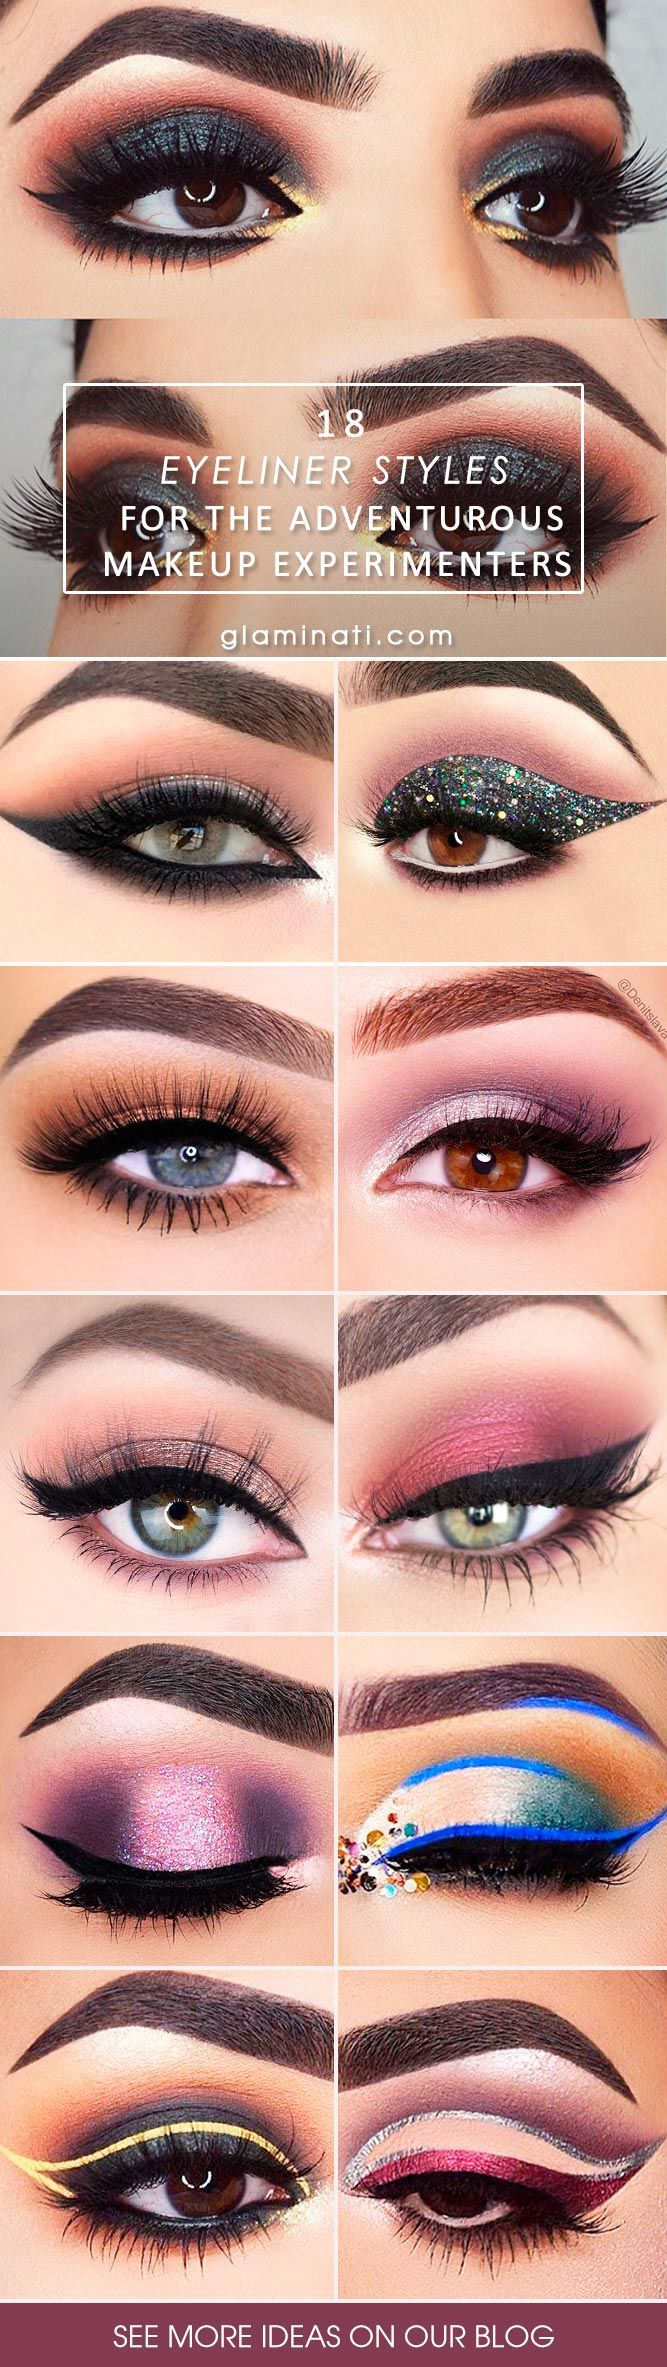 Do you often apply eyeliner? Then you are probably out of ideas already. After learning how to do eyeliner perfectly, it is time to get creative and try bold looks. Express yourself with your makeup. #makeup #makeuplover #makeupjunkie #eyeliner #eyelinerstyle